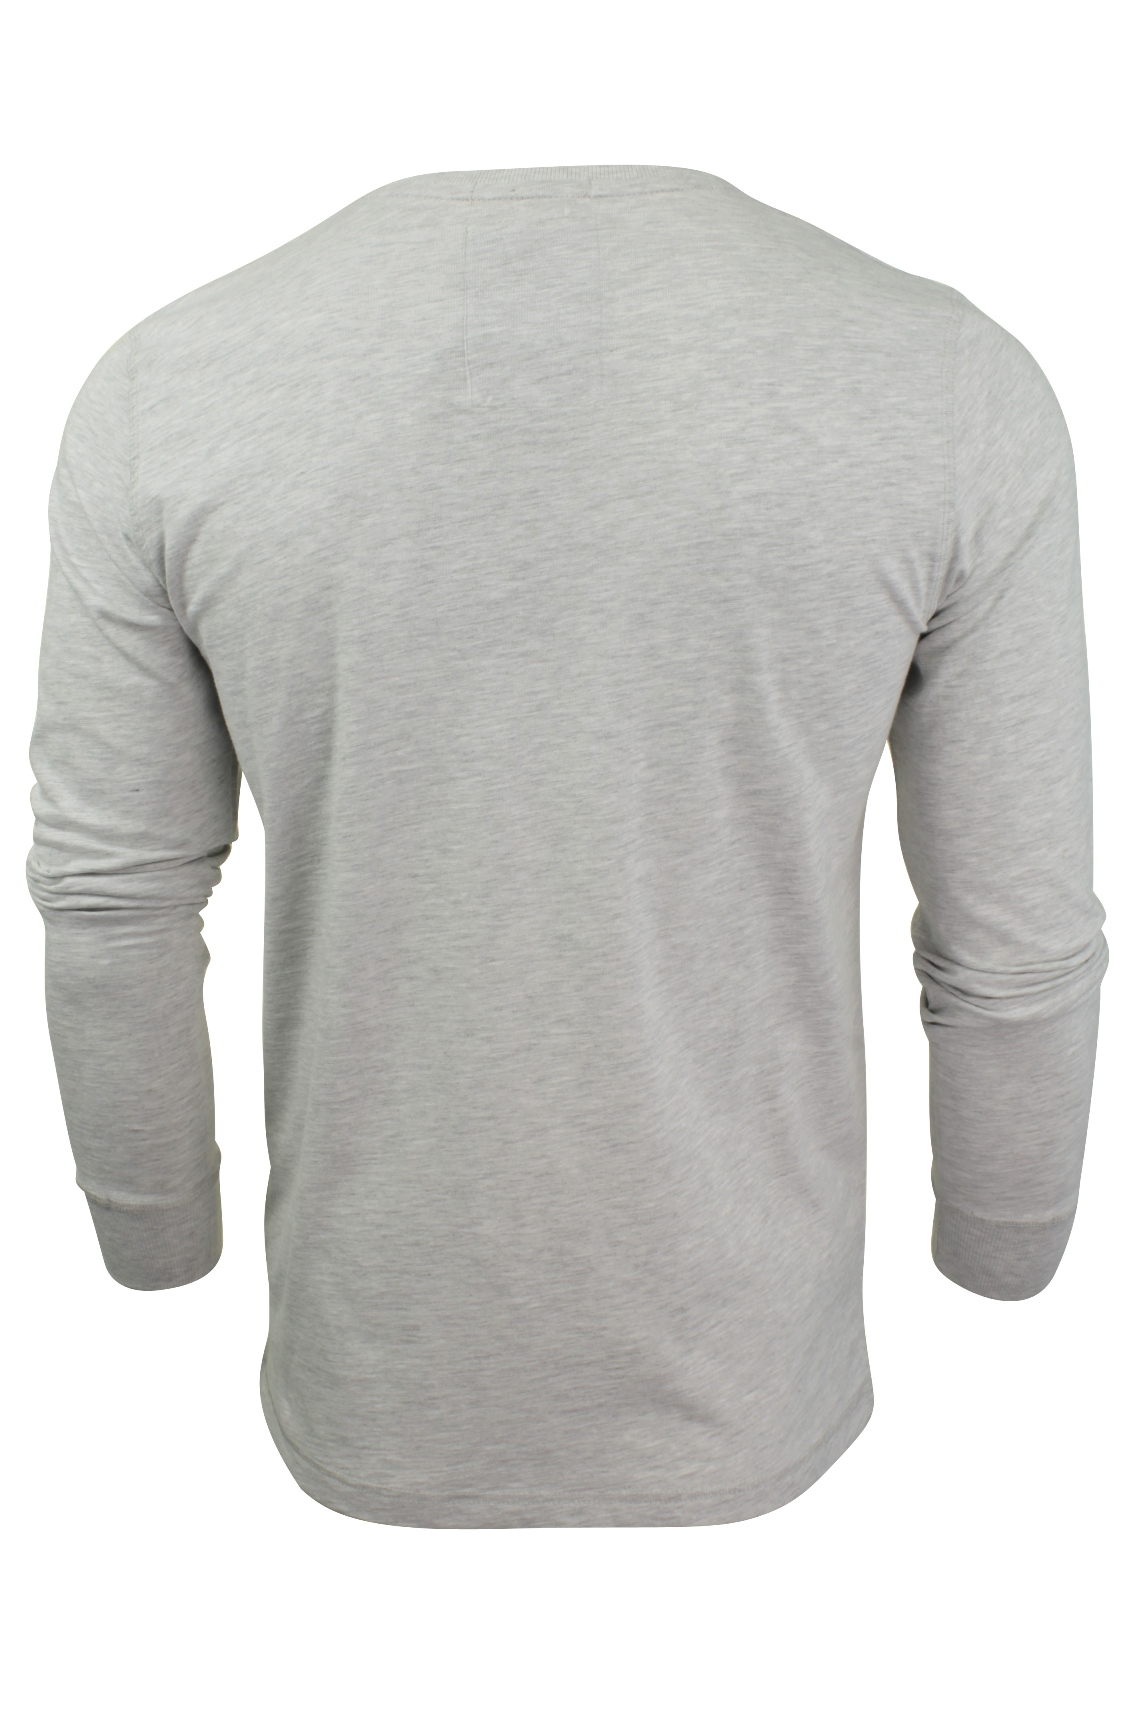 Mens-Grandad-T-Shirt-by-Tokyo-Laundry-039-Lawton-Cove-039-Long-Sleeved thumbnail 8